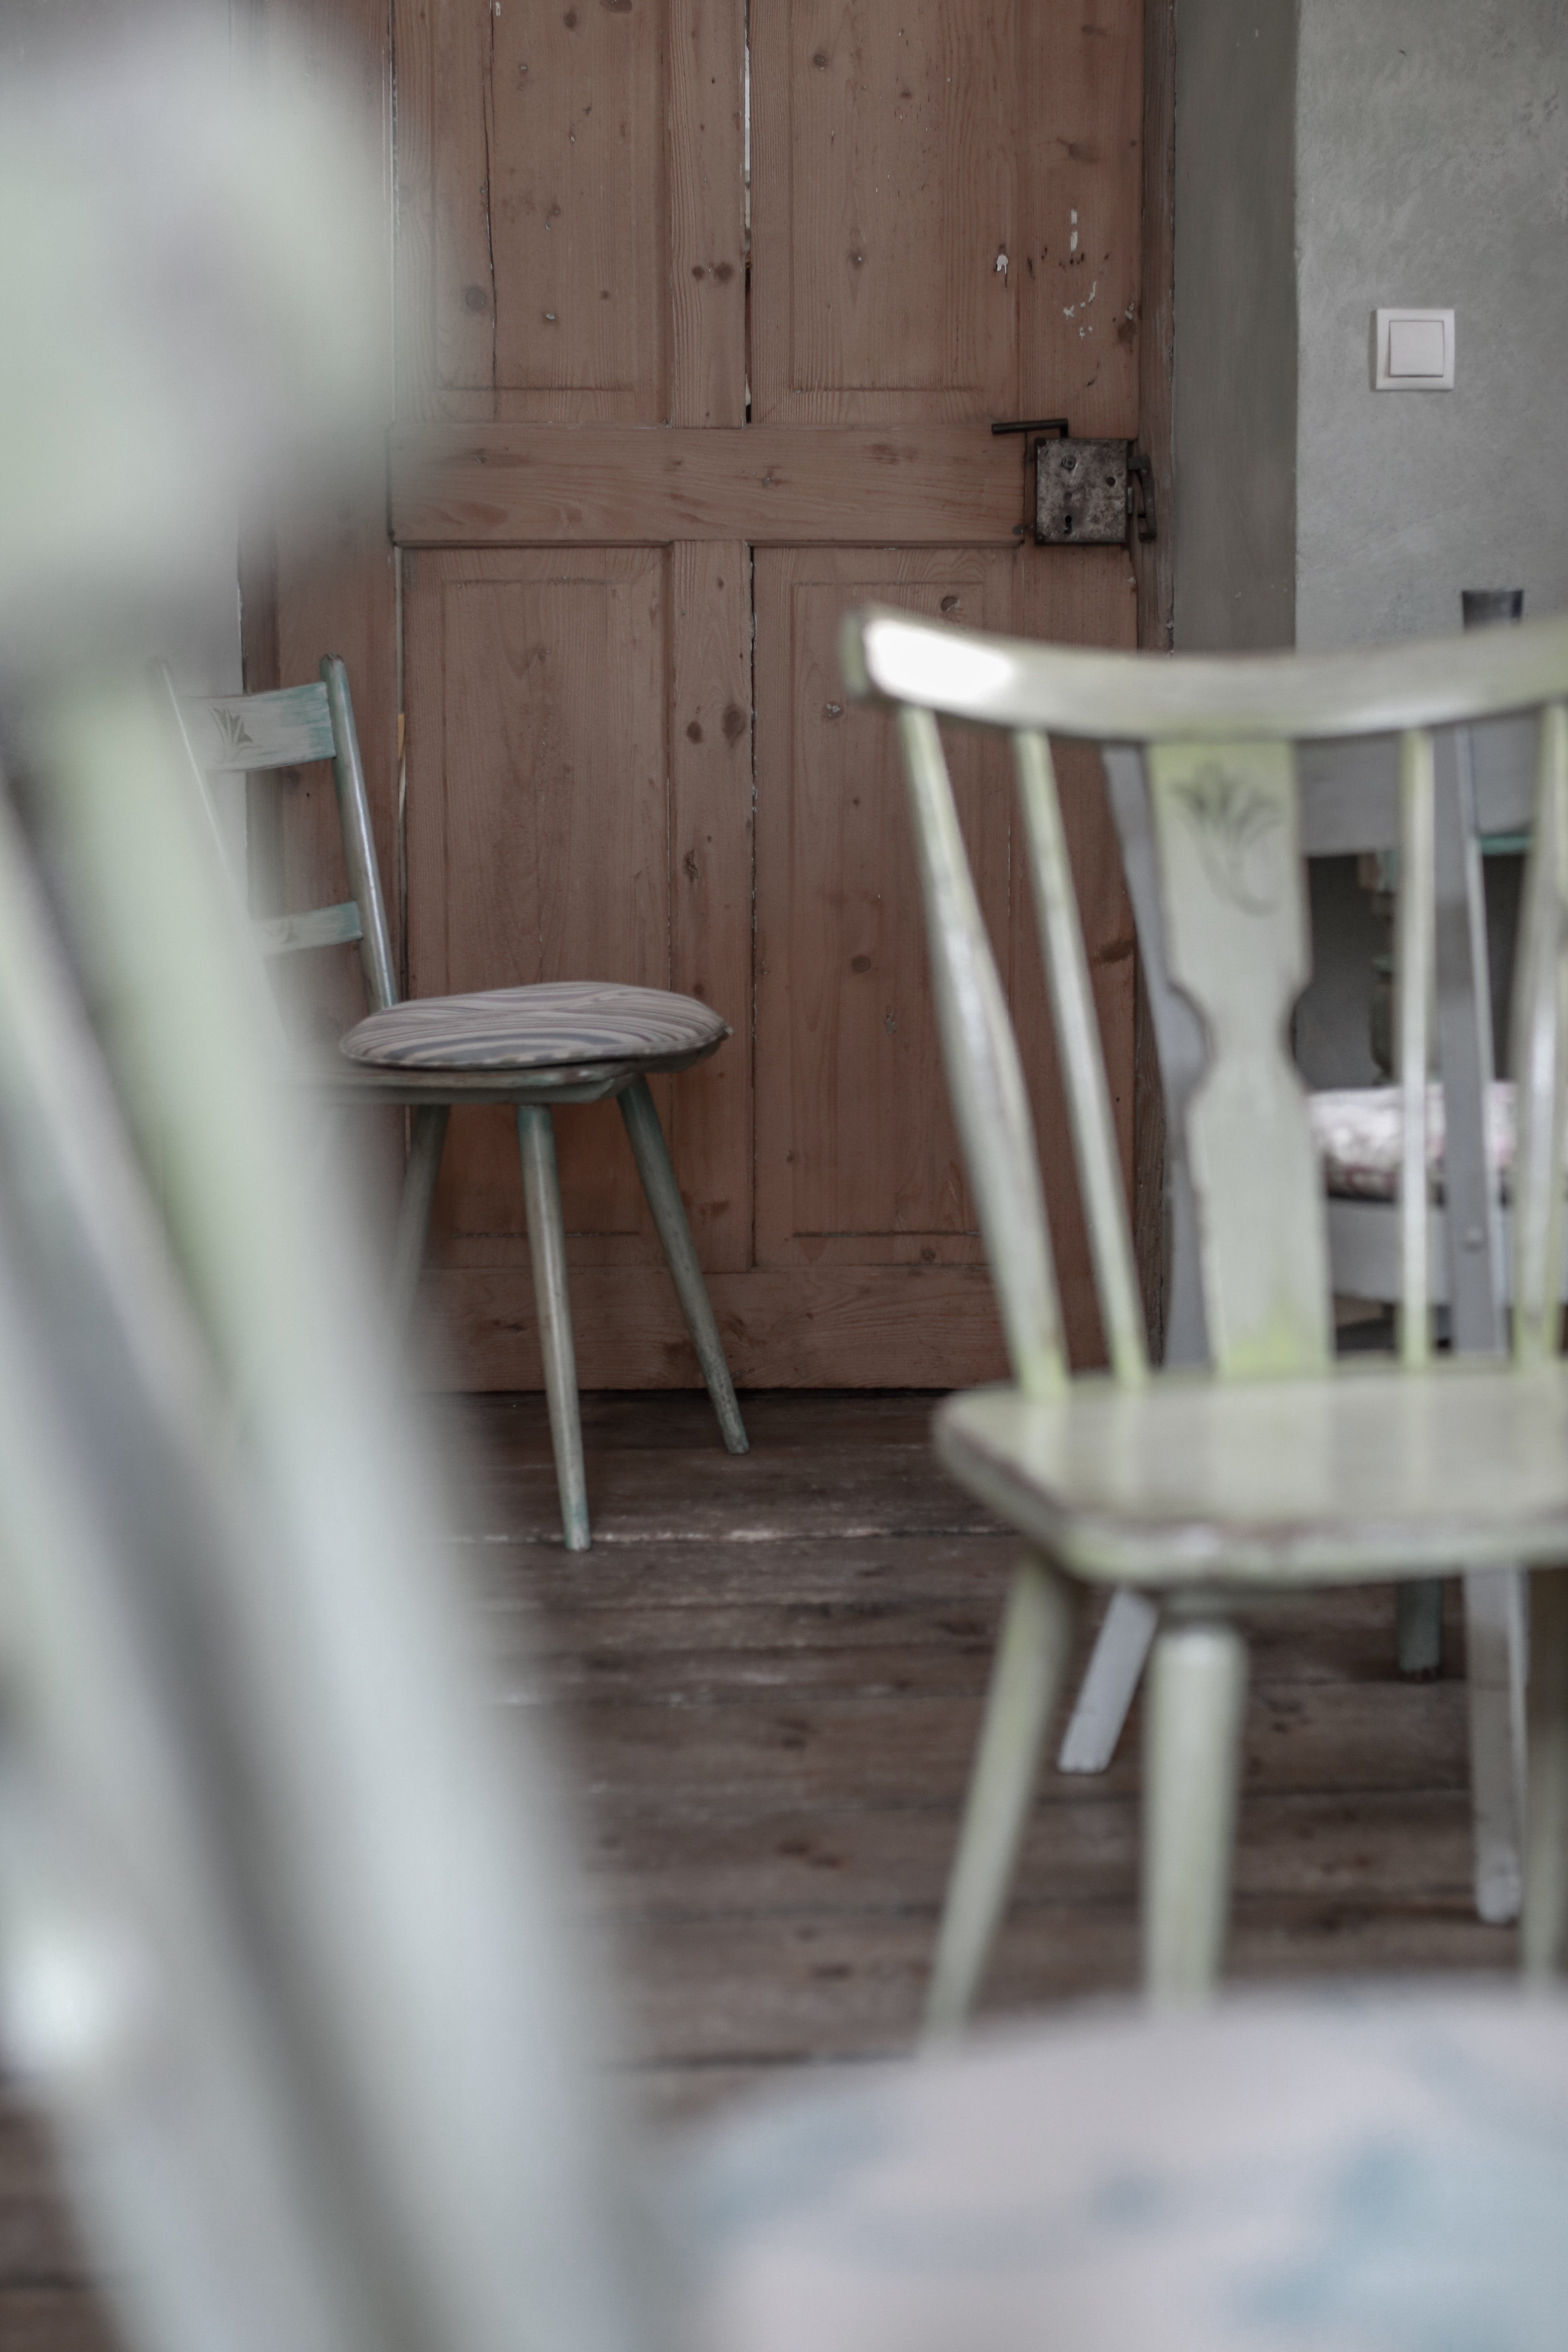 Free stock photo of bar cafe, chairs, door, interior